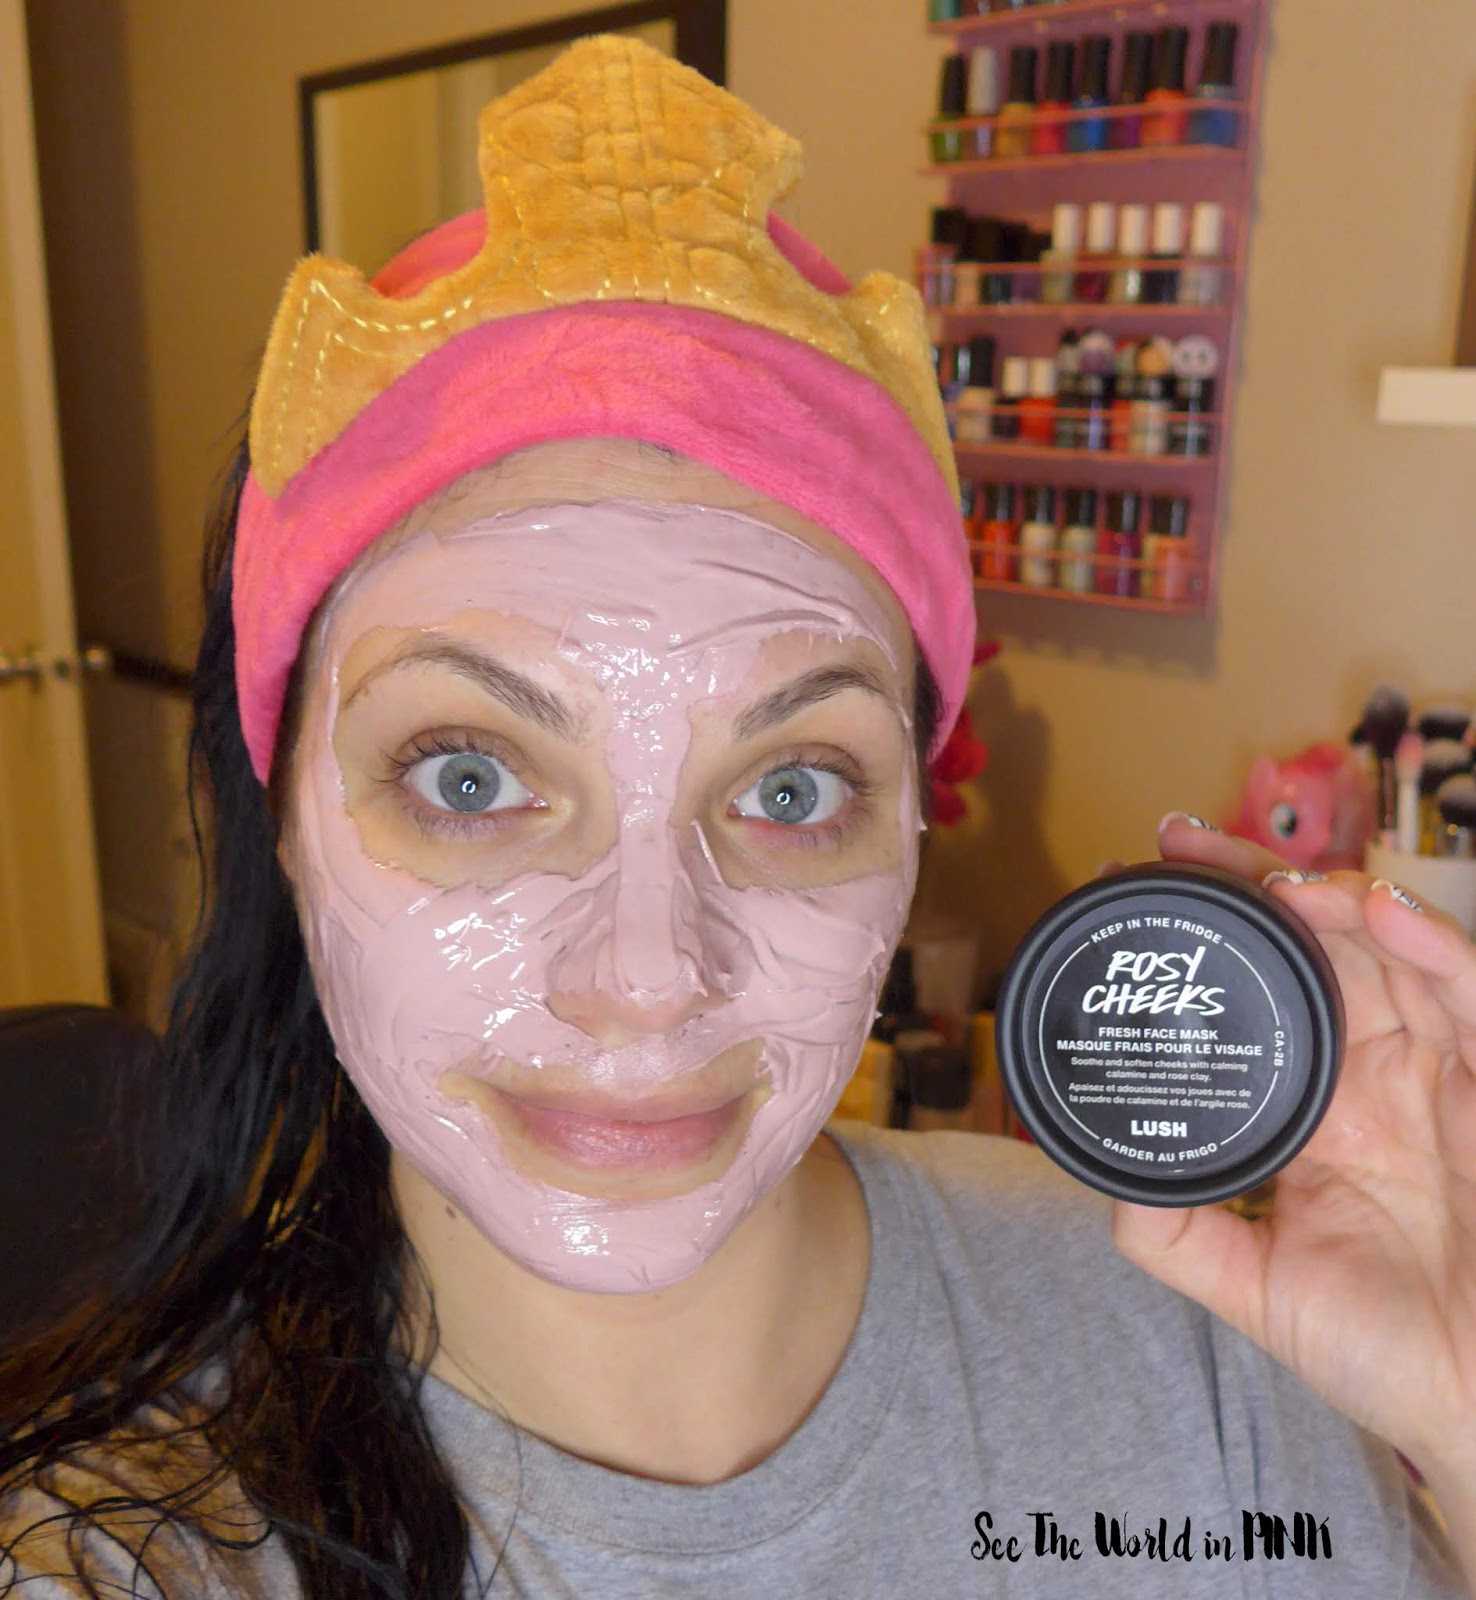 Lush Rosy Cheeks Fresh Face Mask - Try-on and Review!